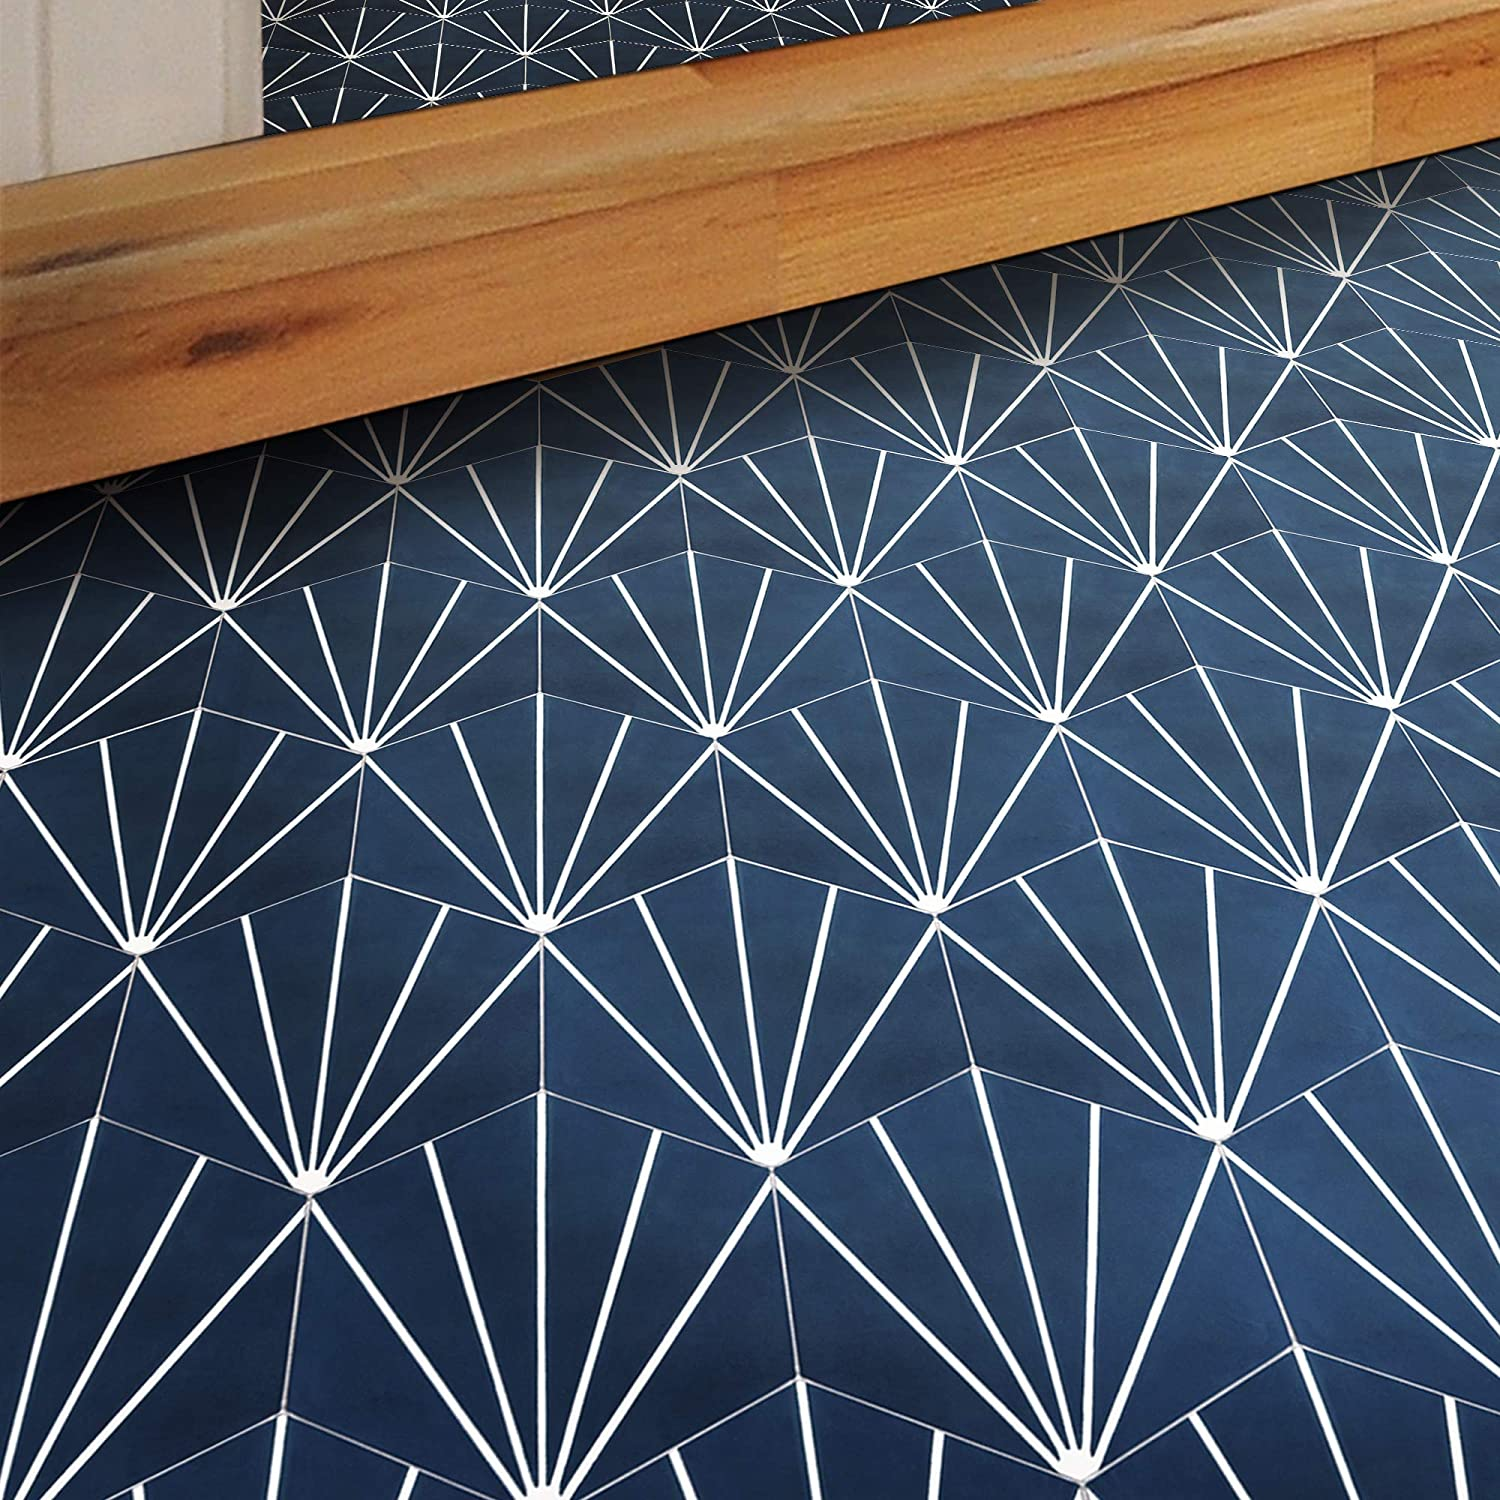 Moroccan Mosaic /& Tile House CTP72-06 Menara Handmade Cement Tile 8x9 Navy Blue and White